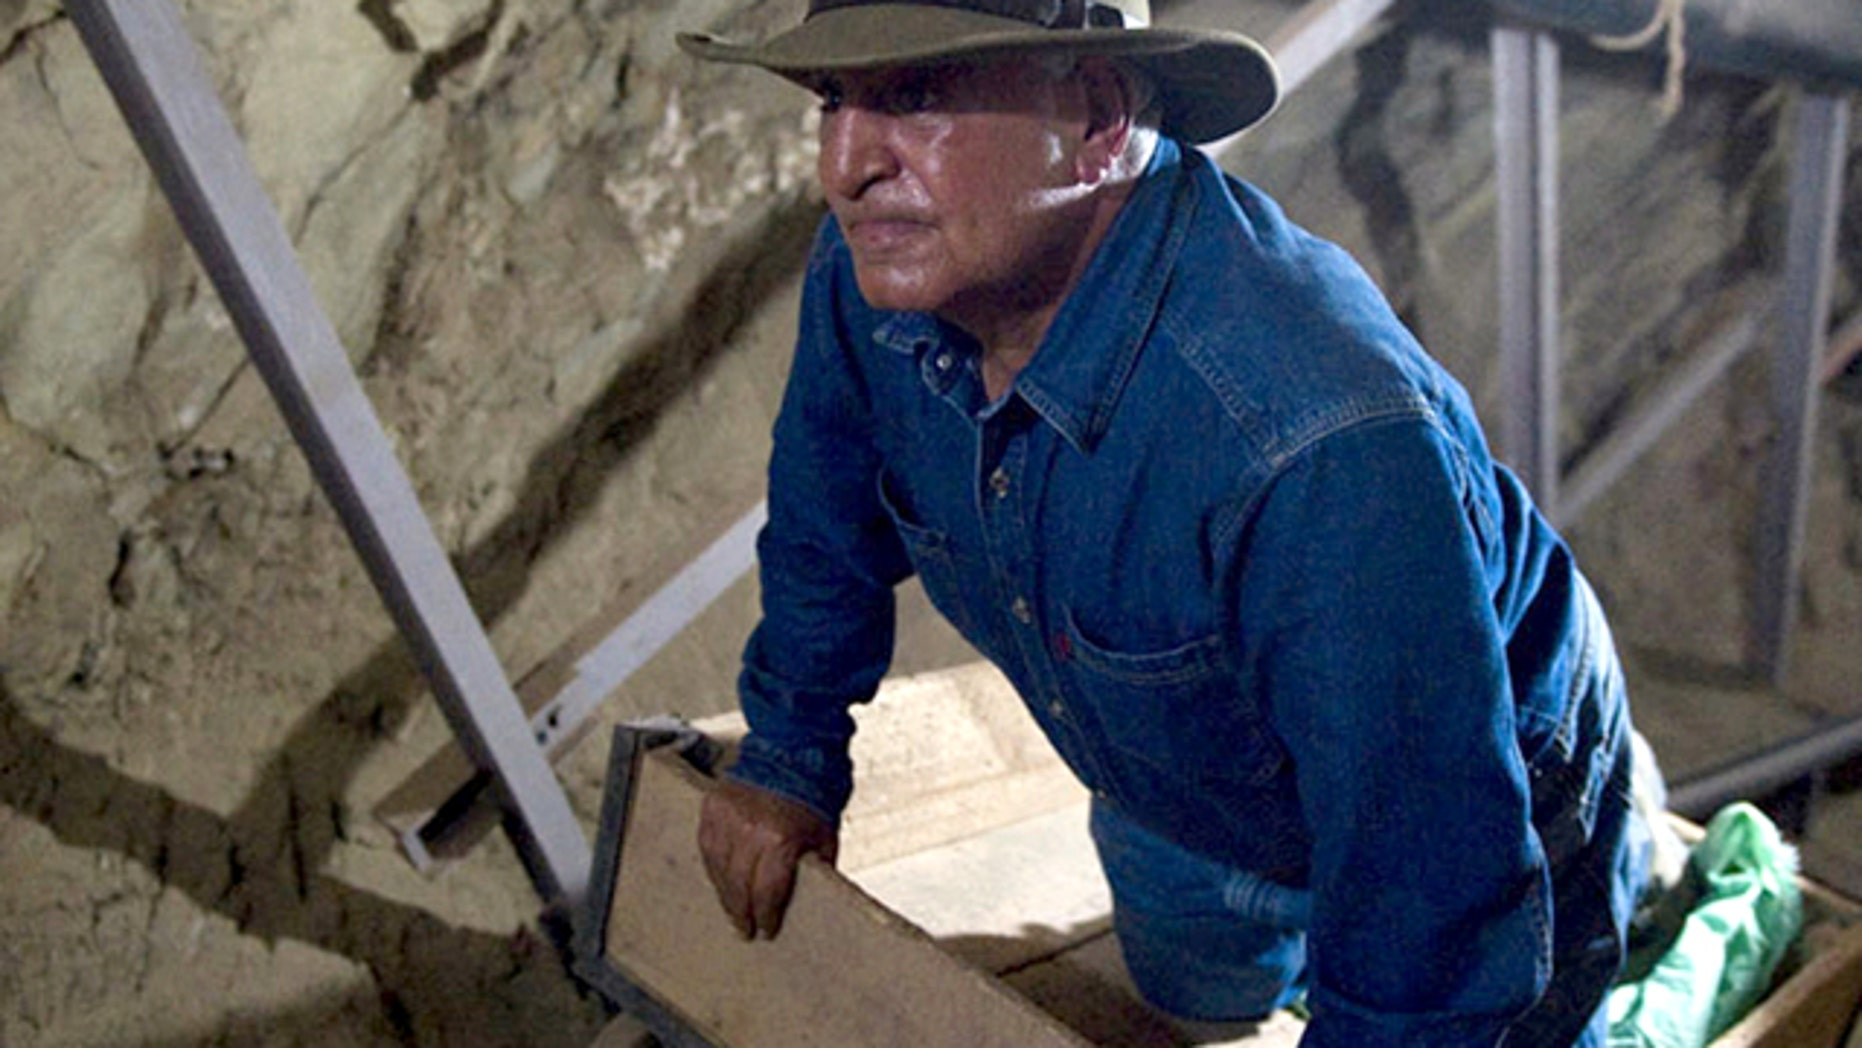 June 30, 2010: Looking for all the world like Indiana Jones, antiquities chief Zahi Hawass studies an unfinished 570-foot long tunnel in Luxor, Egypt -- first discovered in 1960 and possibly meant to be a secret tomb.